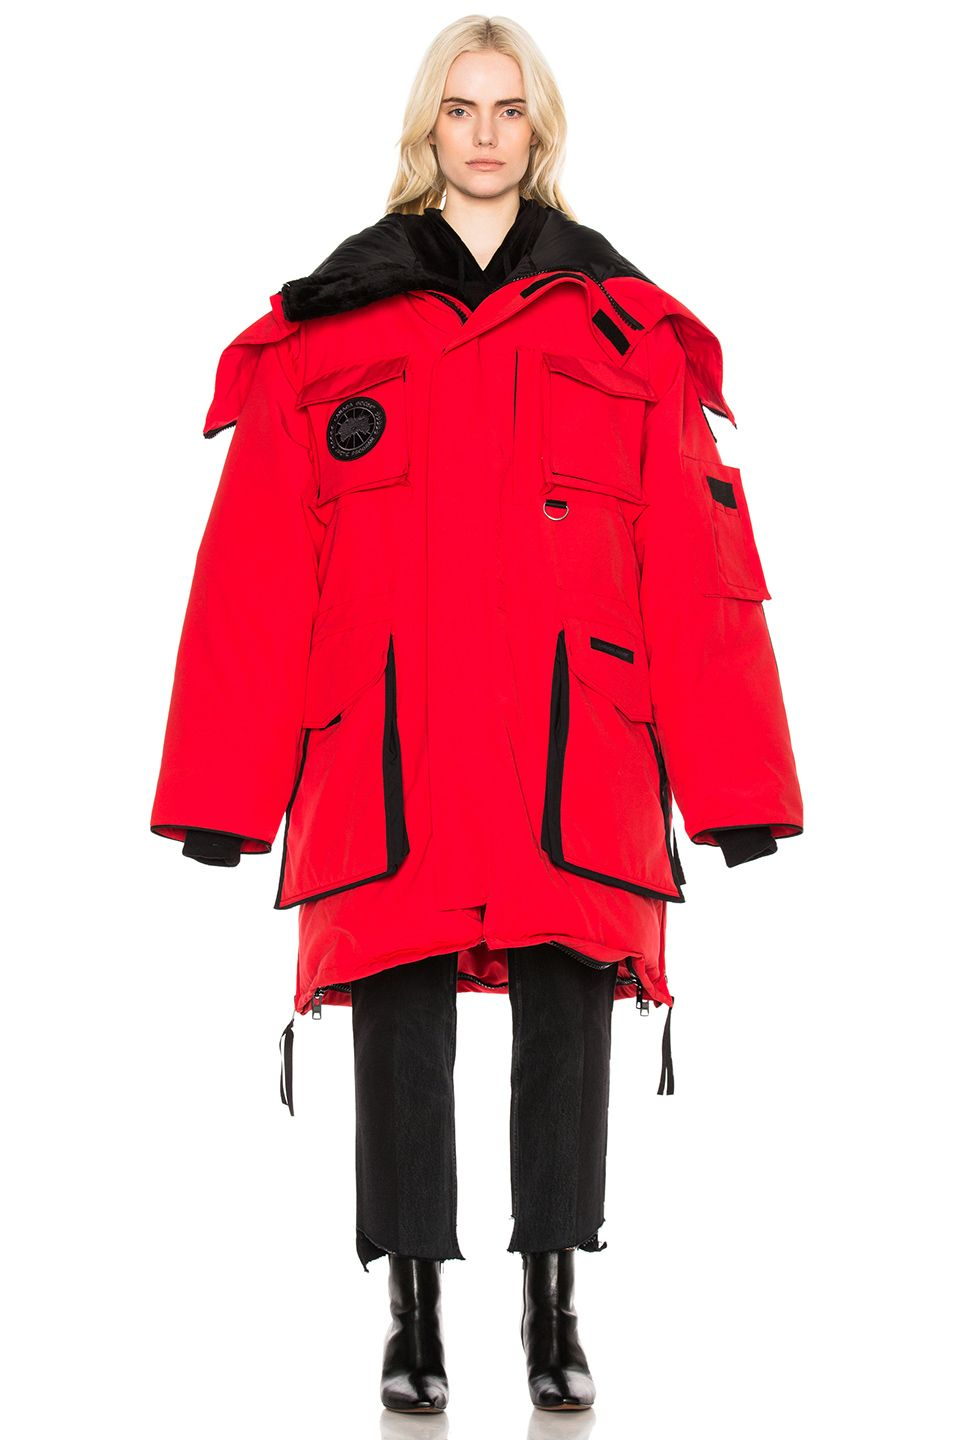 507b38e7127d Image 2 of VETEMENTS x Canada Goose Oversized Fold Up Parka in Red ...